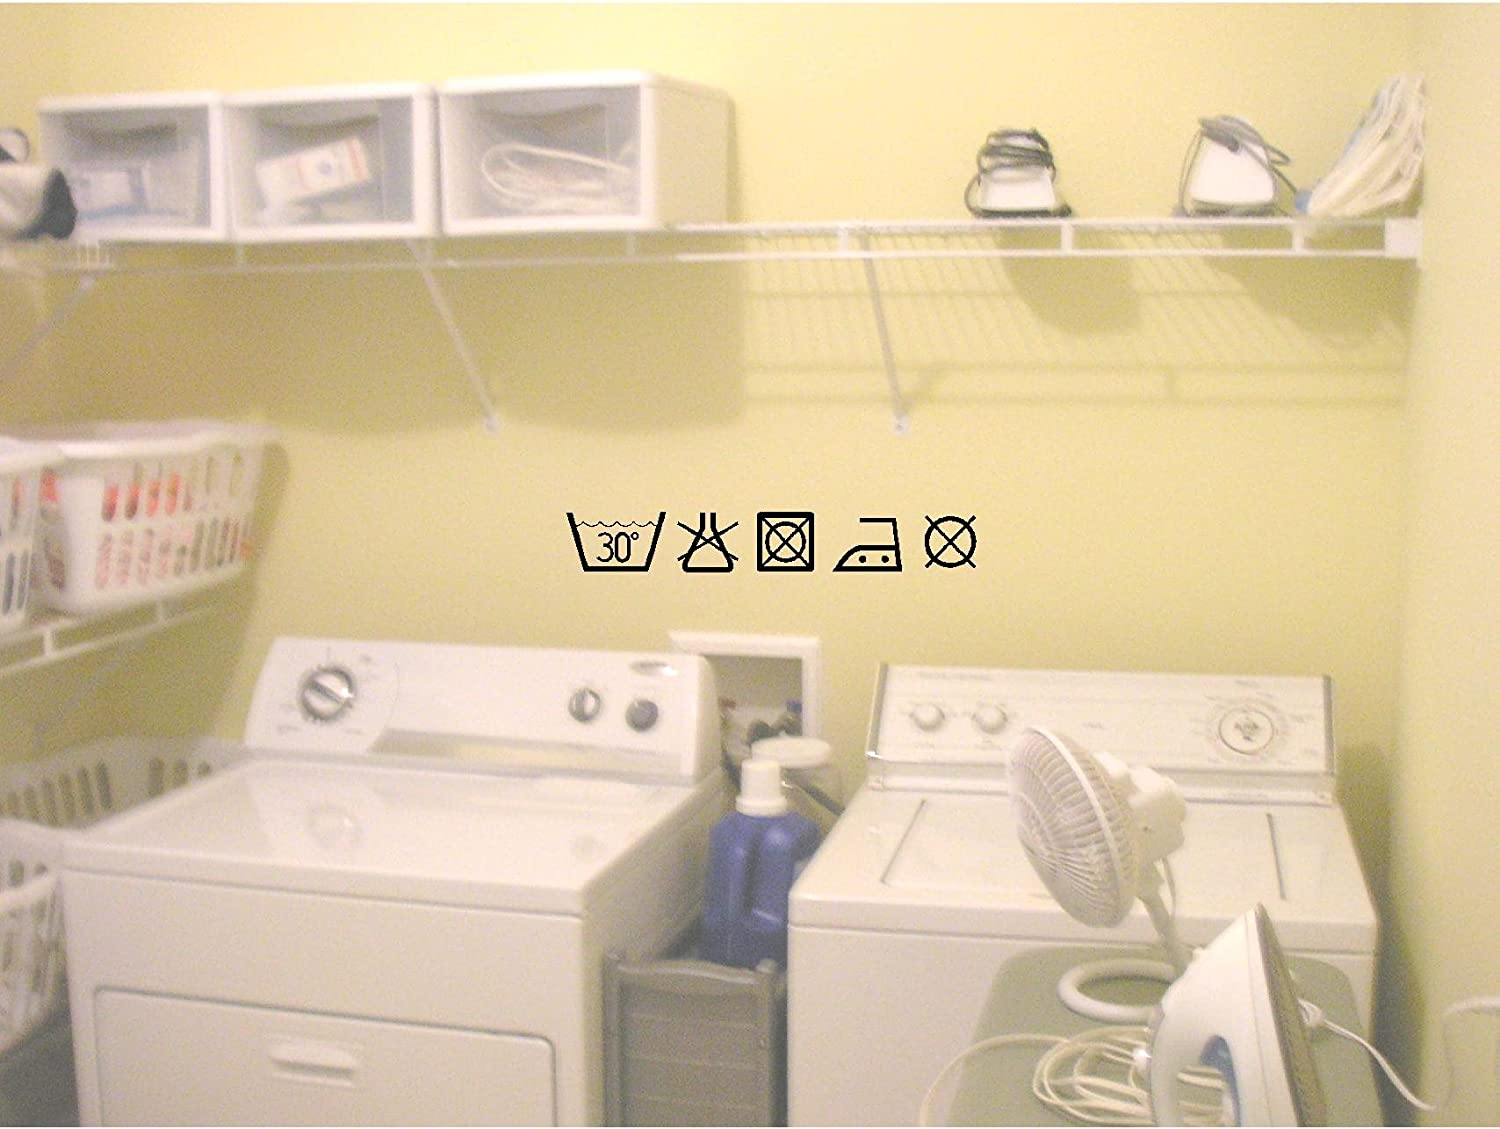 Amazon.com: Cute Laundry room SYMBOLS wall art wall sayings ...